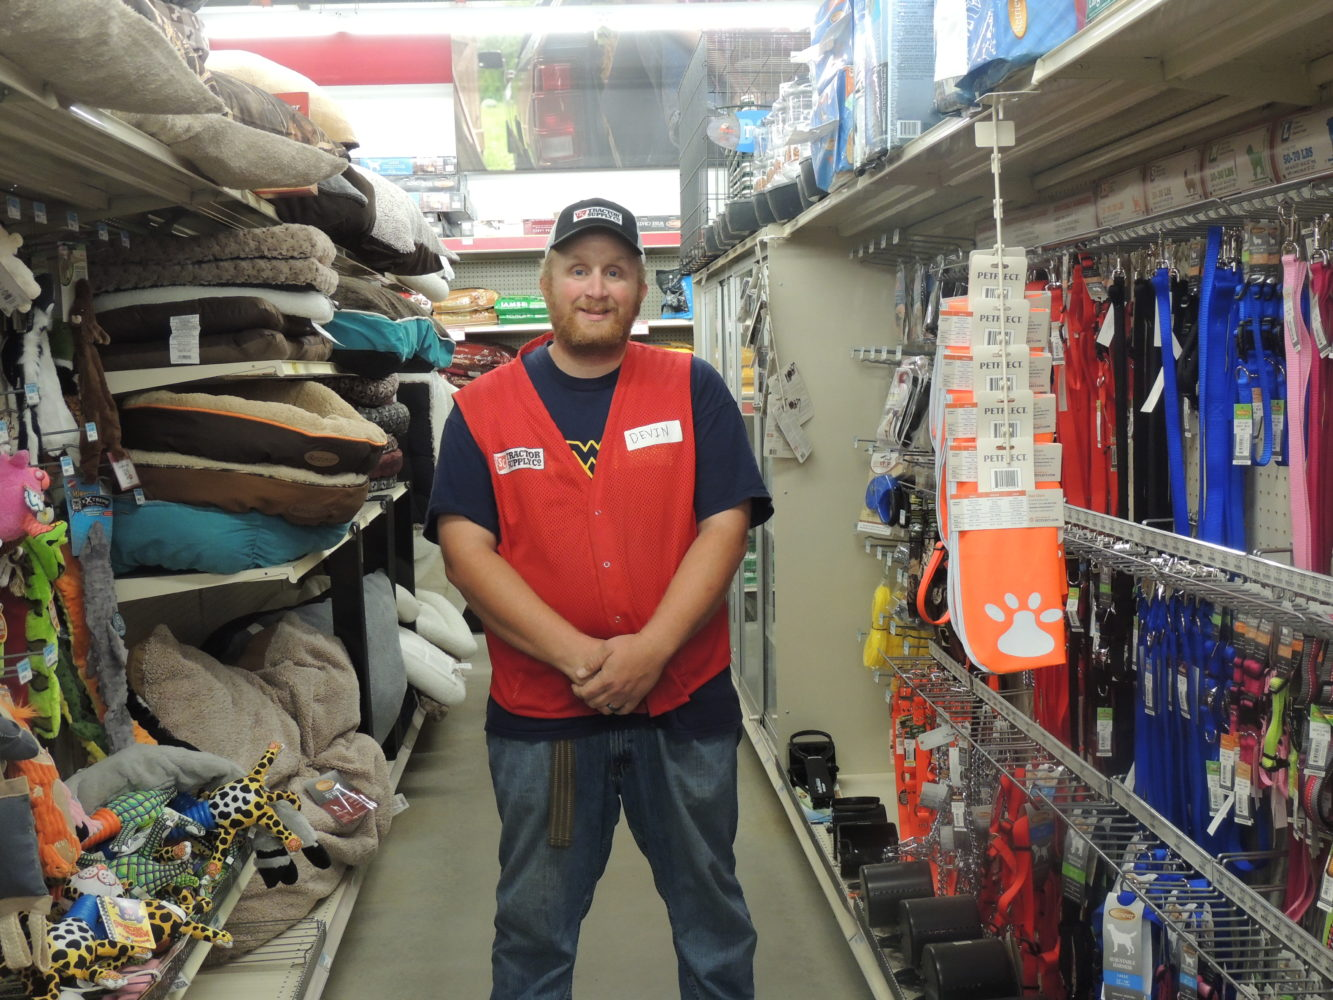 Tractor Supply Find It : Glen dale tractor supply to help find homes for animals